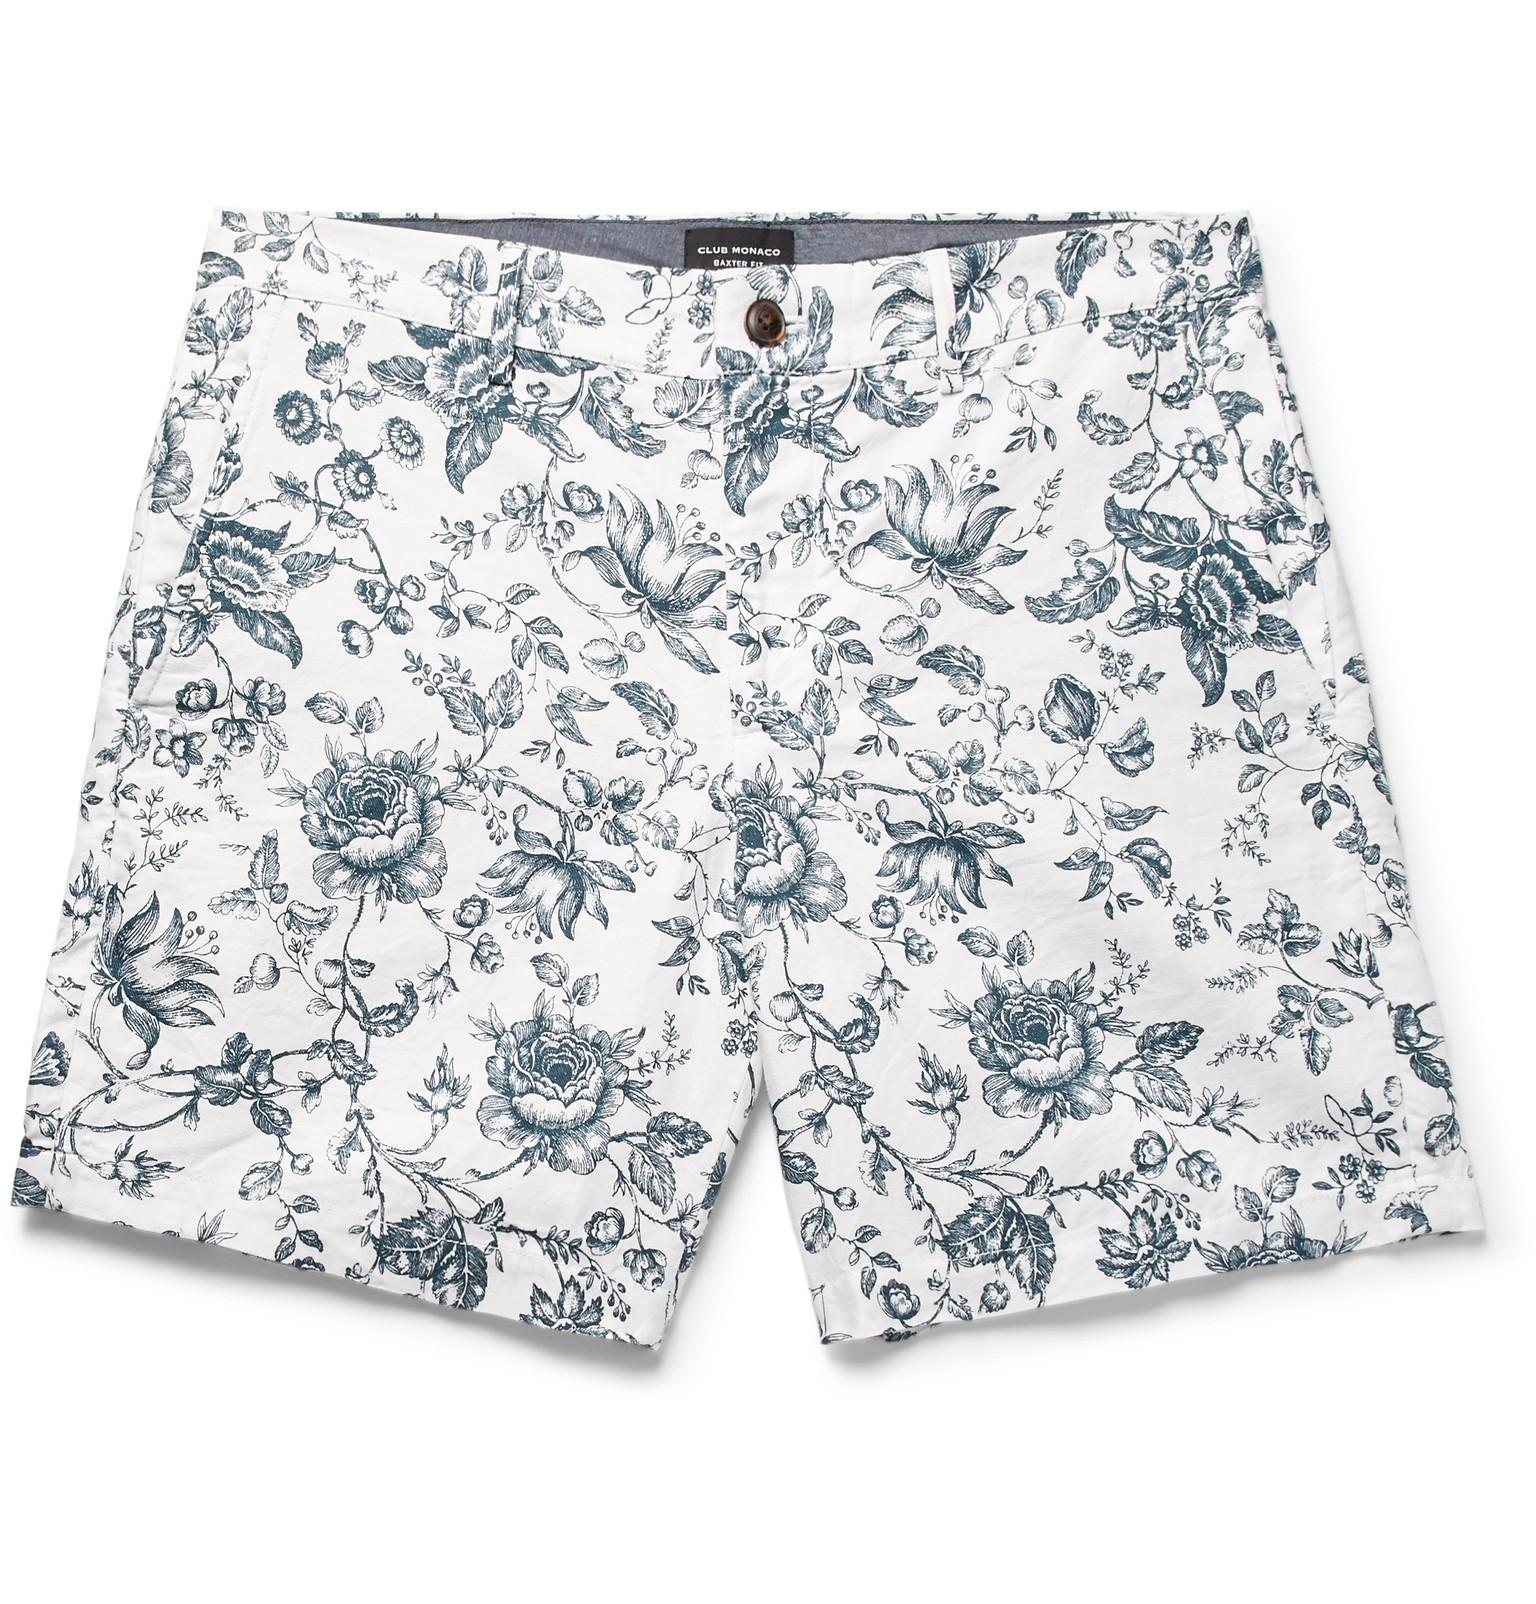 Baxter Slim-fit Printed Linen And Cotton-blend Twill Shorts Club Monaco 7MGOs5mh